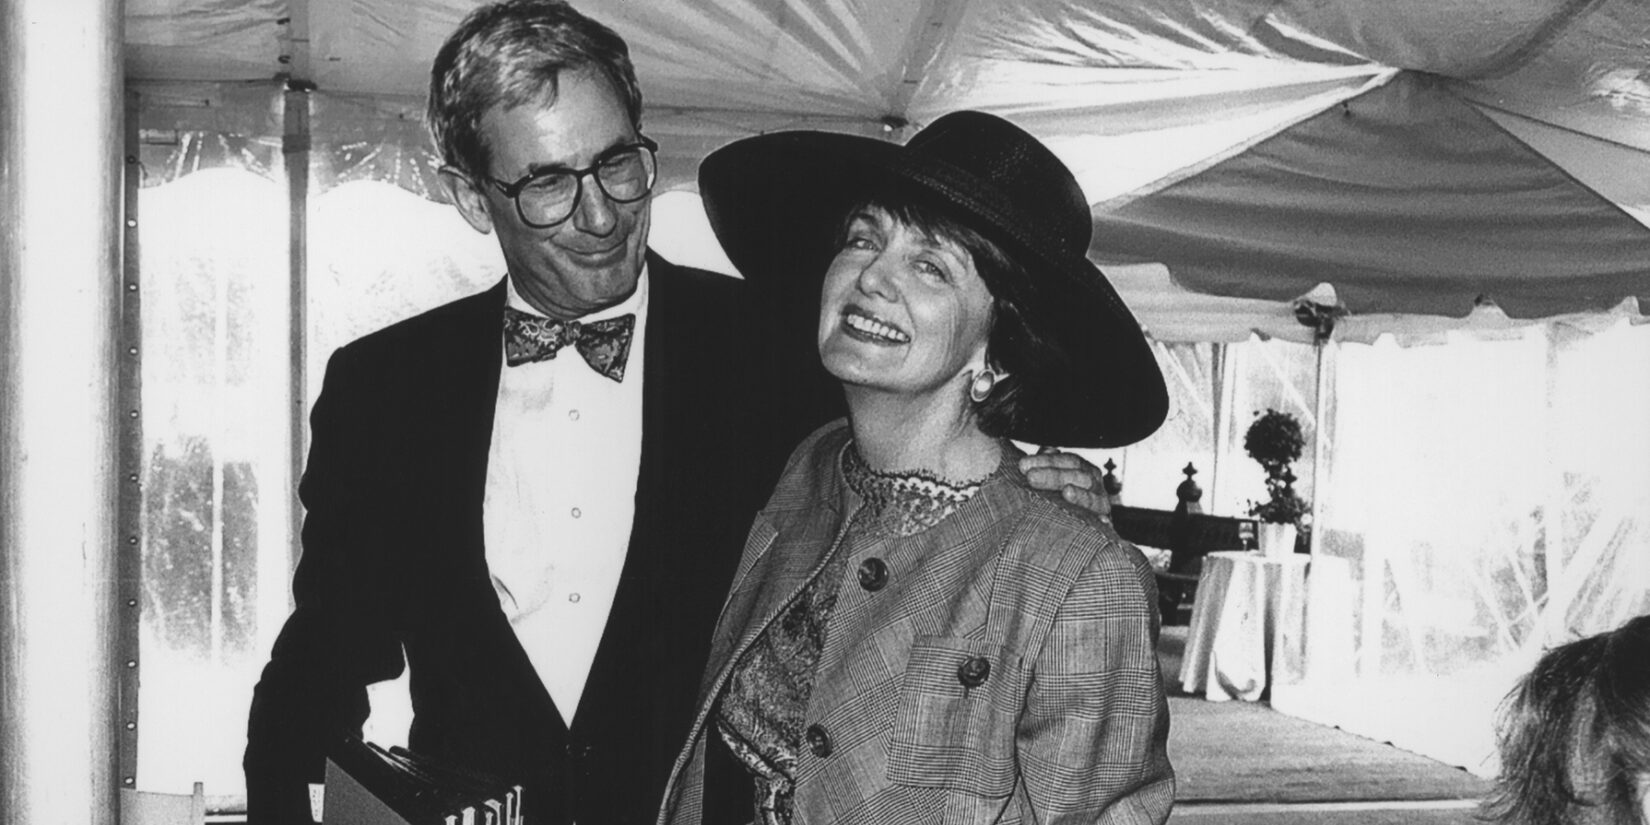 Black and white photo of Richard Gilder and Elizabeth Rogers